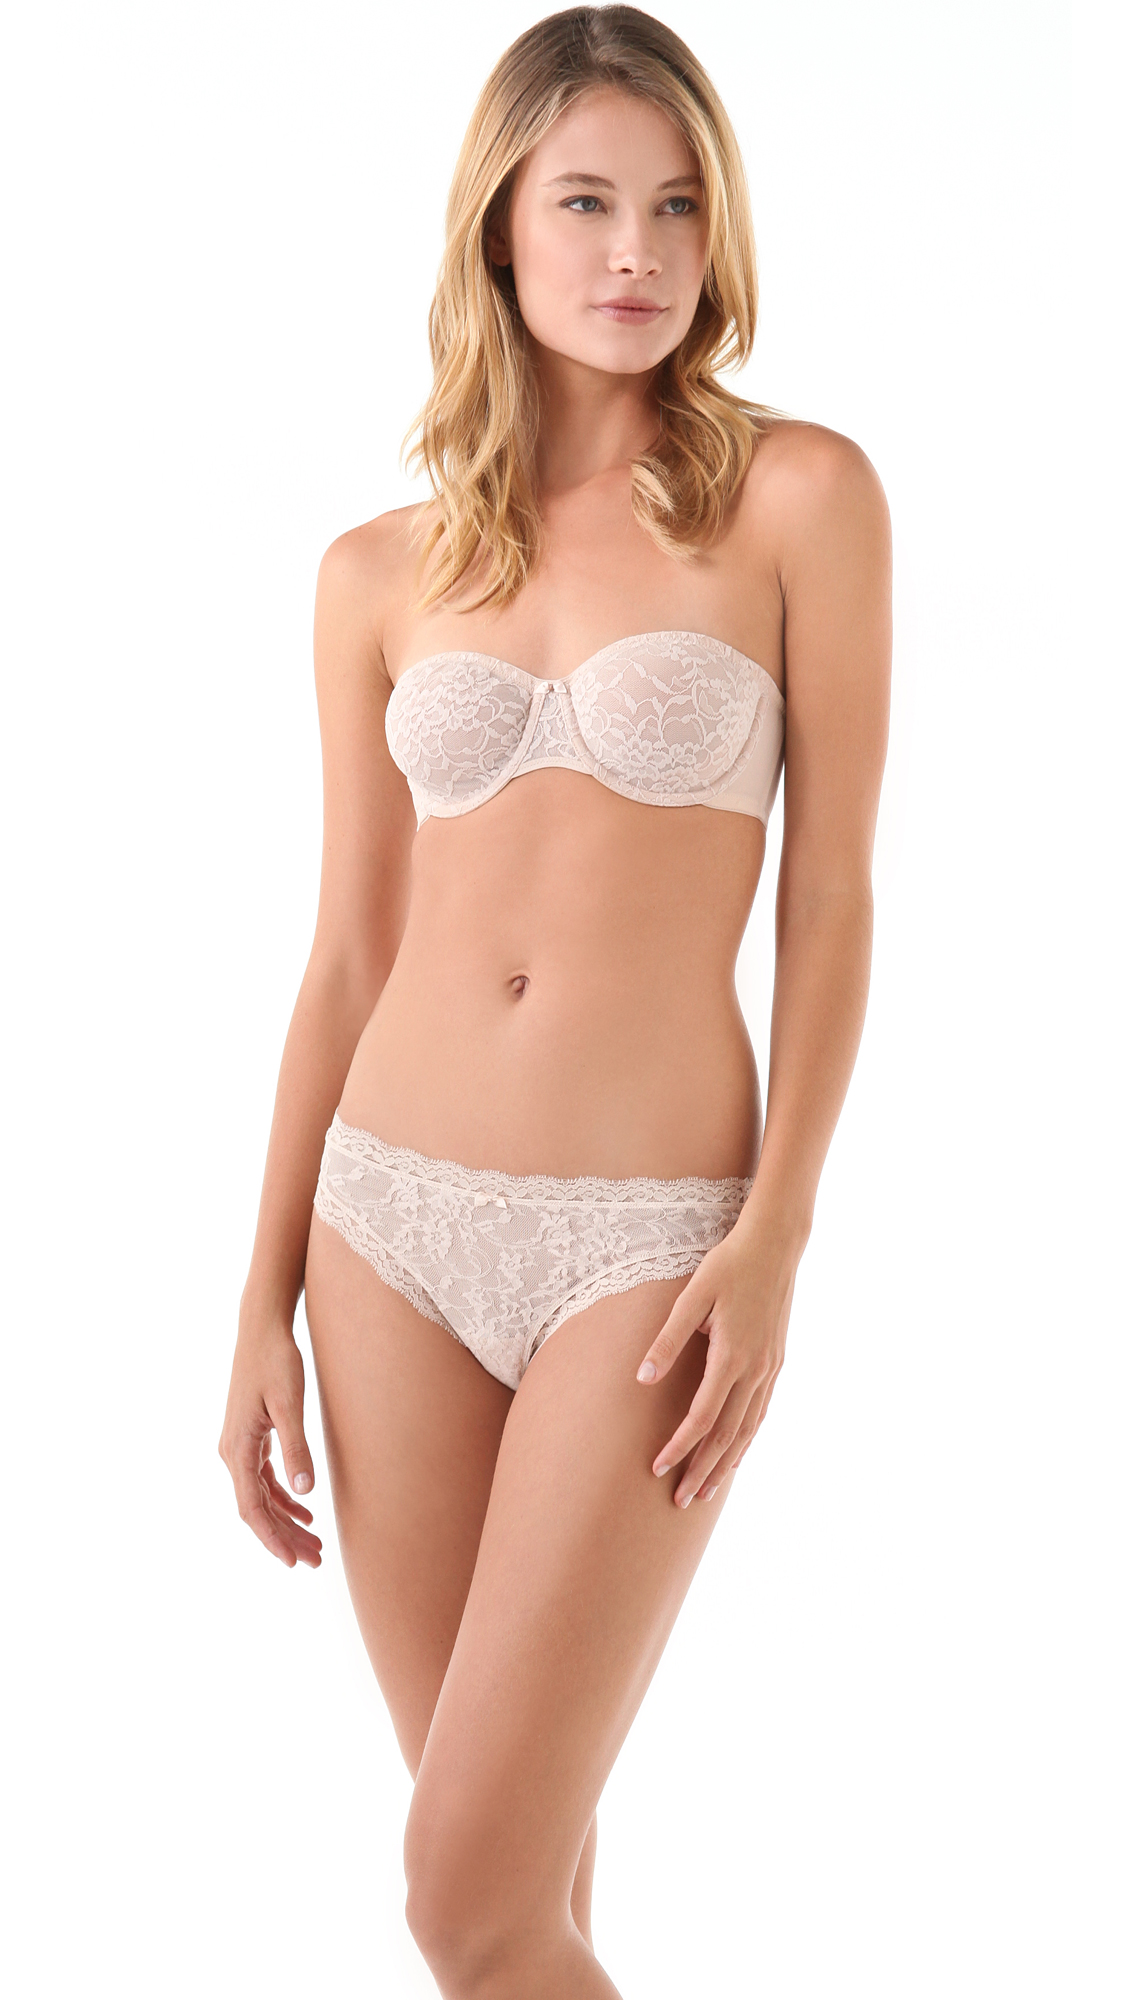 3a88f70af971e DKNY Intimates Signature Lace Unlined Strapless Bra